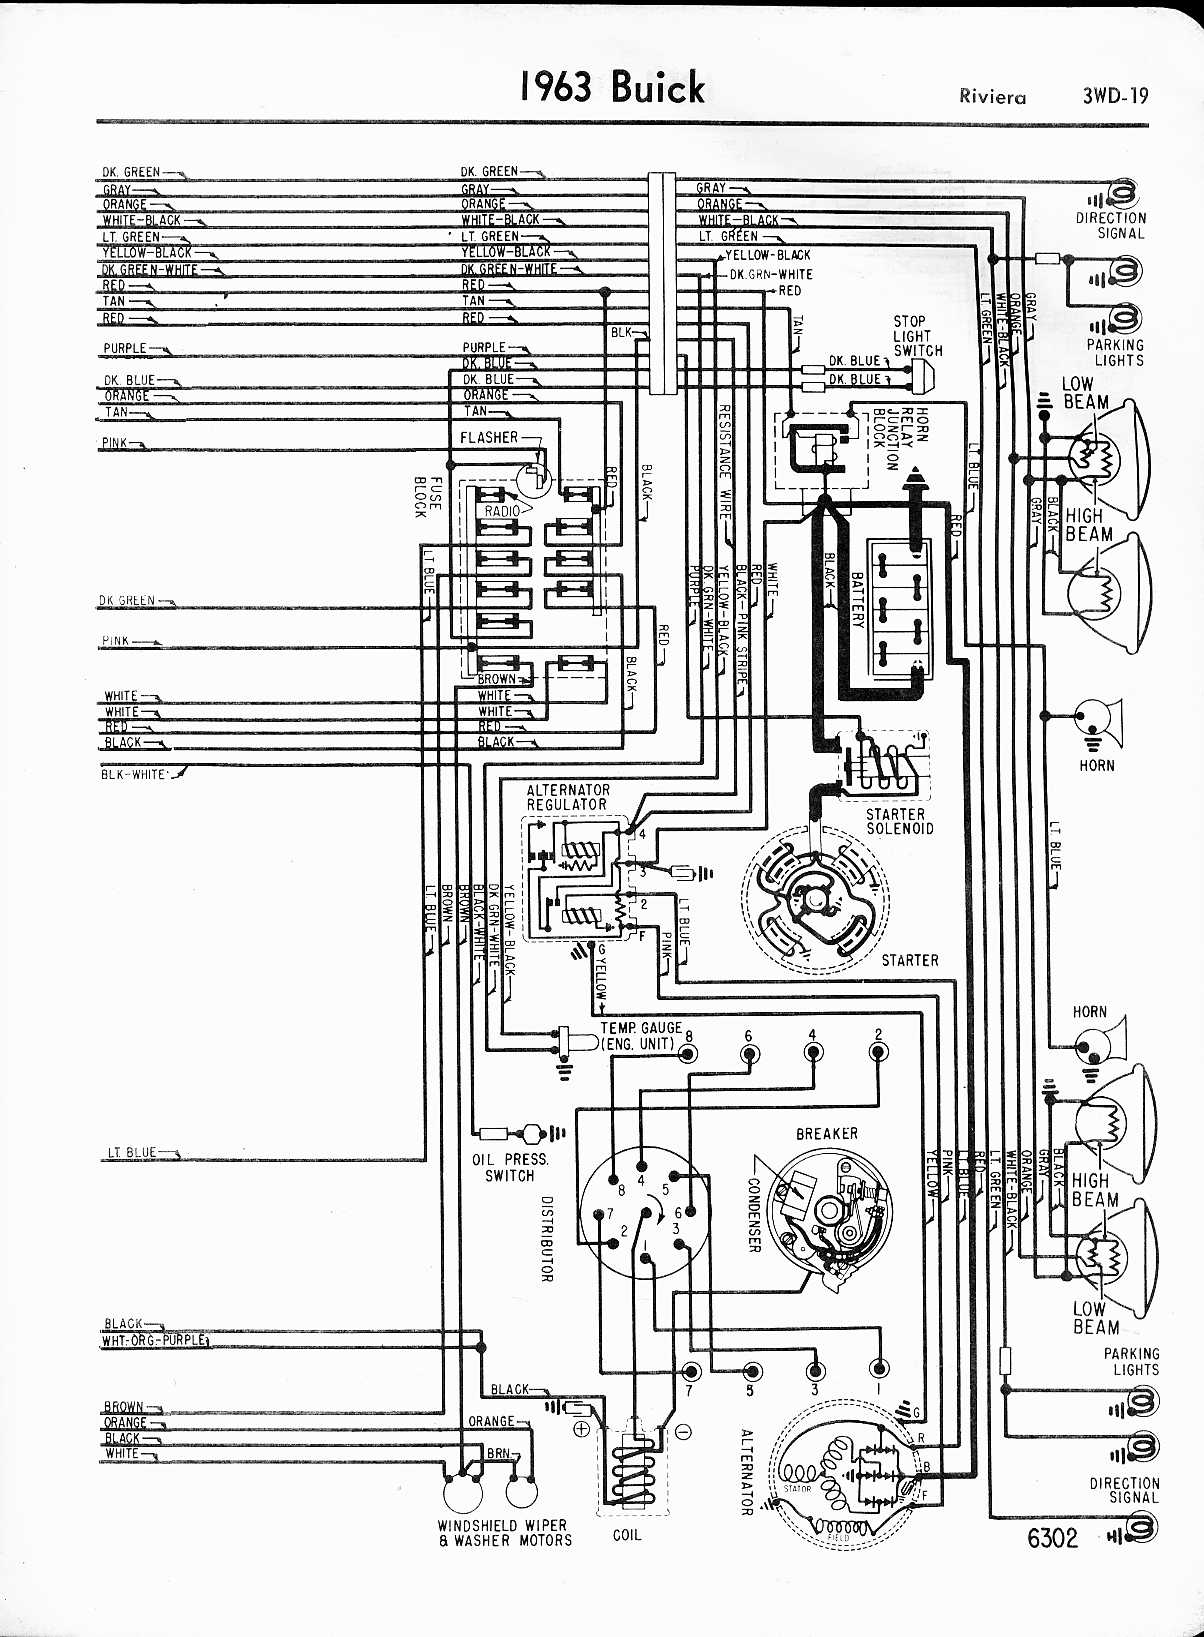 MWireBuic65_3WD 019 wiring diagram for 1963 buick special on wiring download wirning  at cita.asia